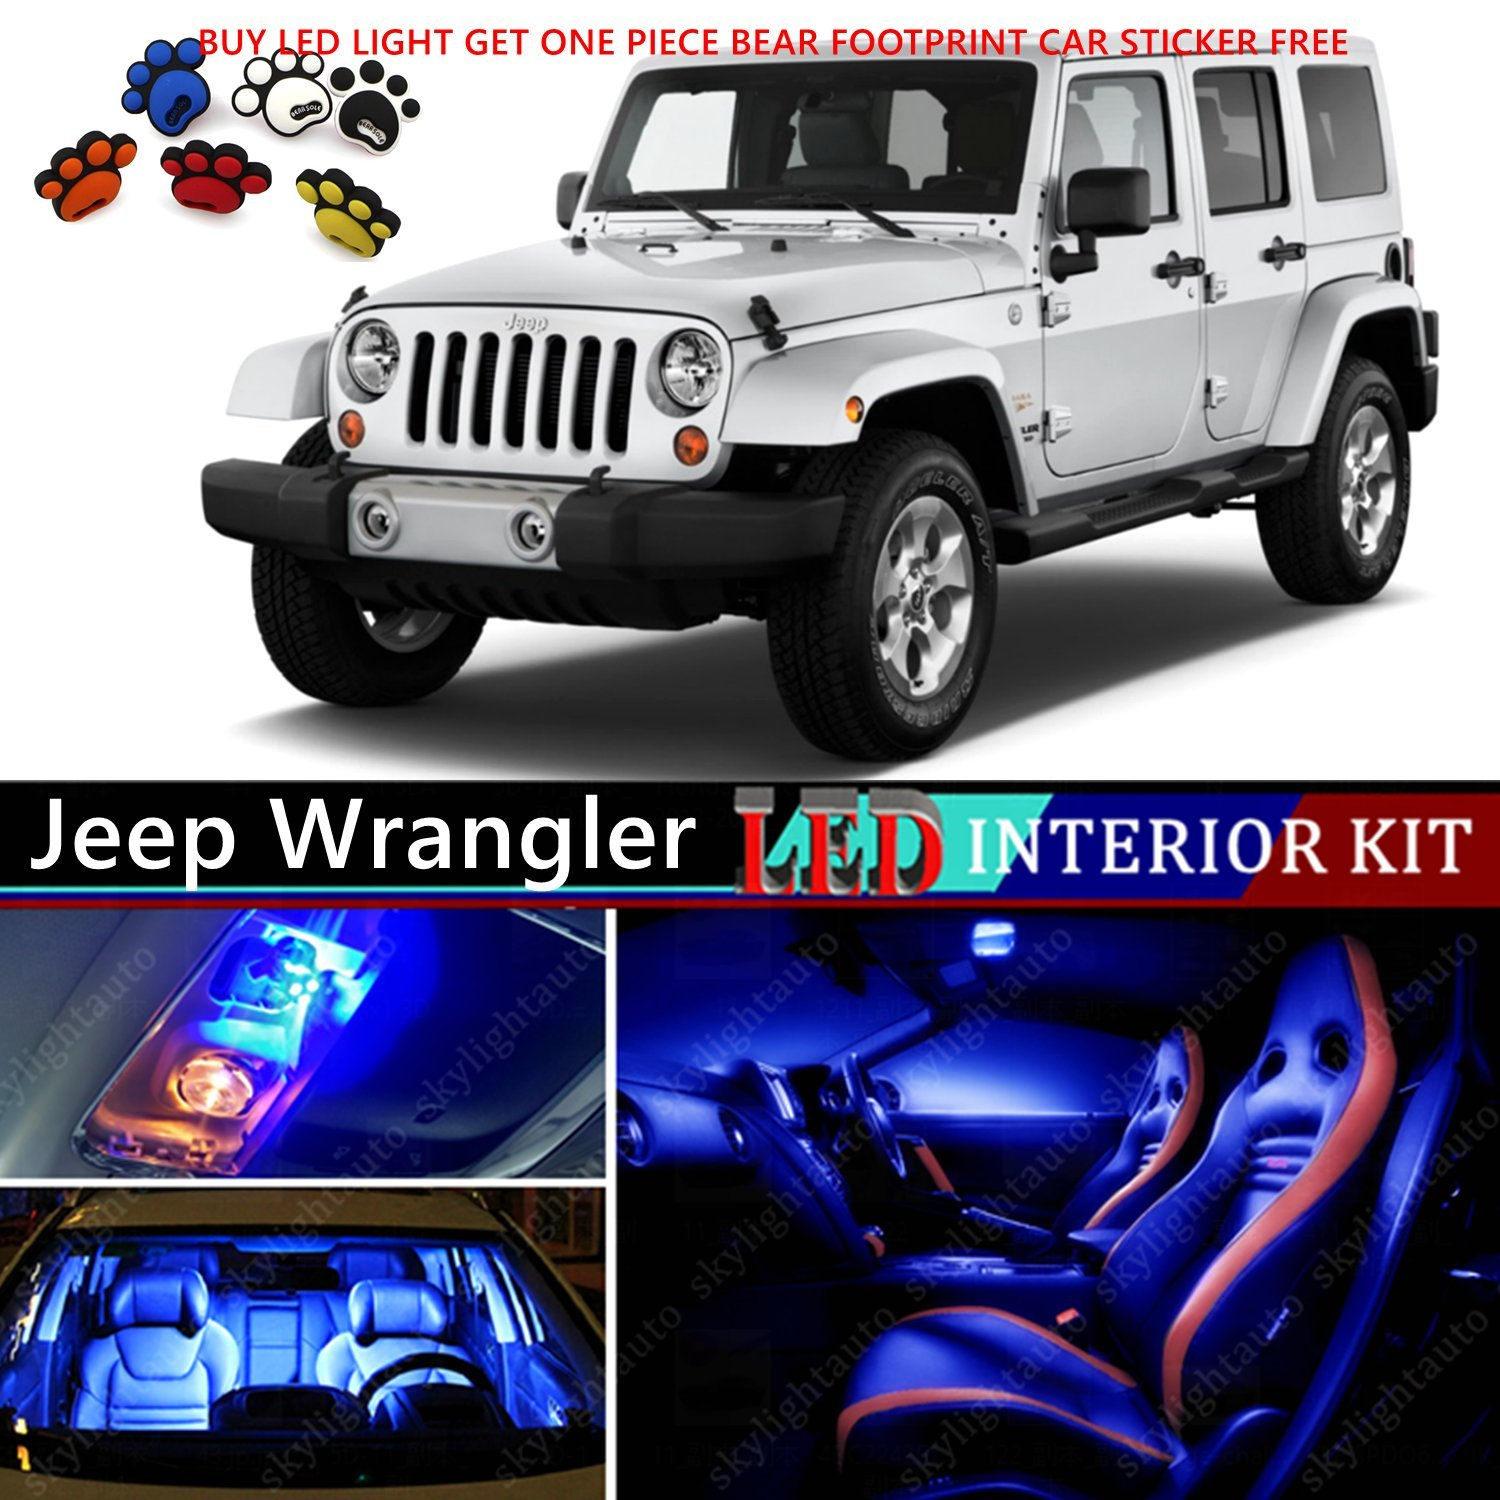 10pcs Led Premium Blue Light Interior Package Deal For Jeep Wrangler Kits 2007 2015 Automotive